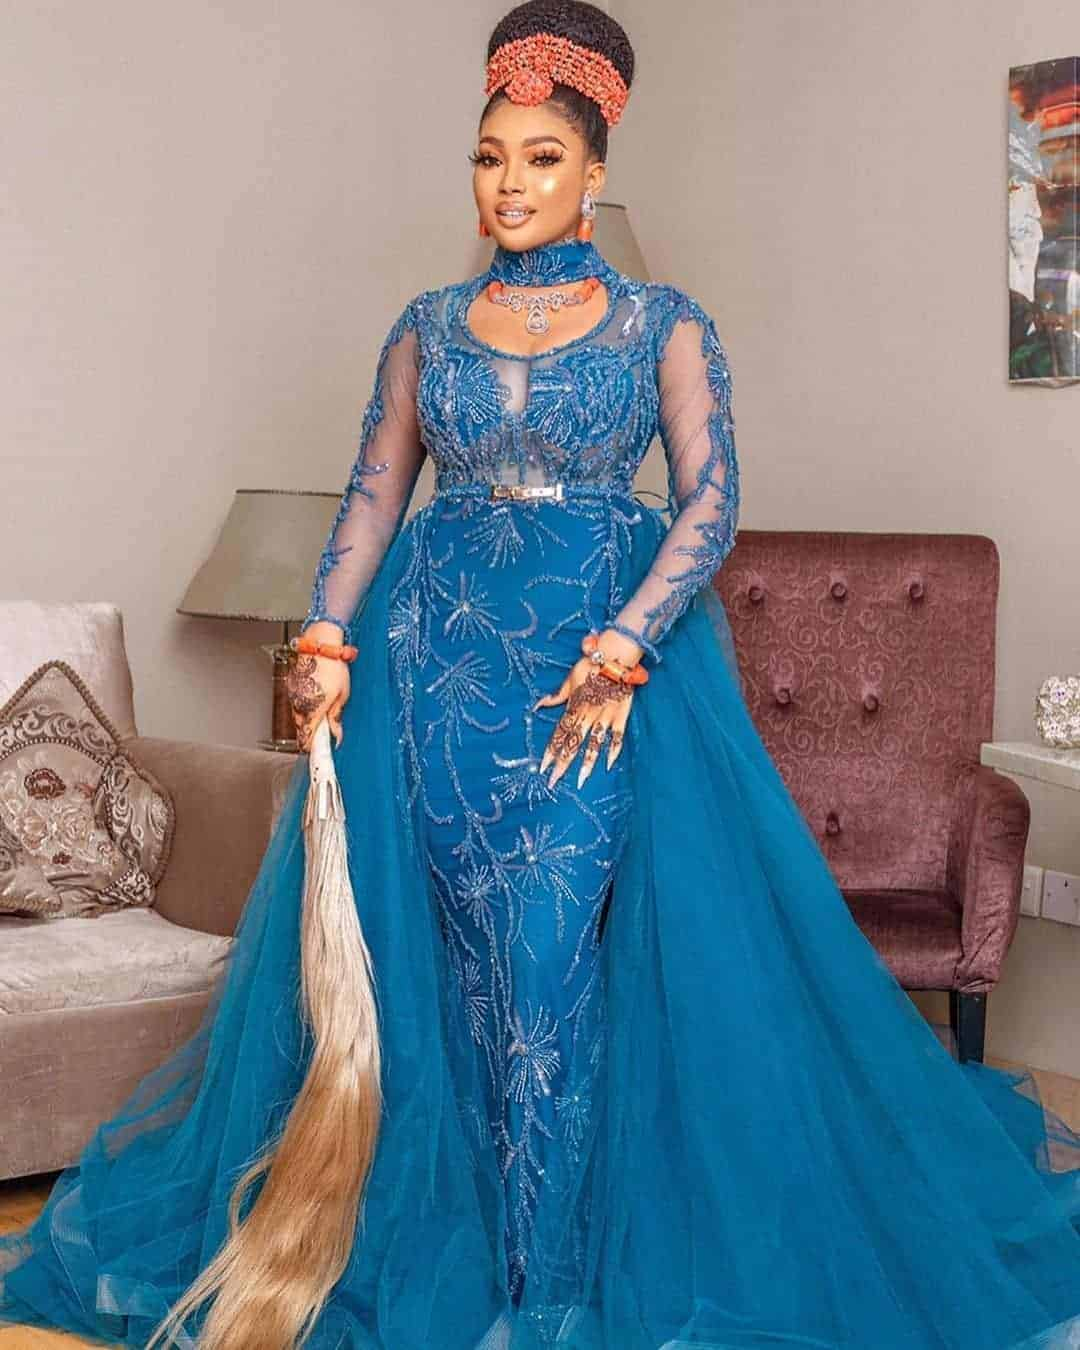 67 Latest Aso Ebi Styles For 2021 (Updated Weekly)